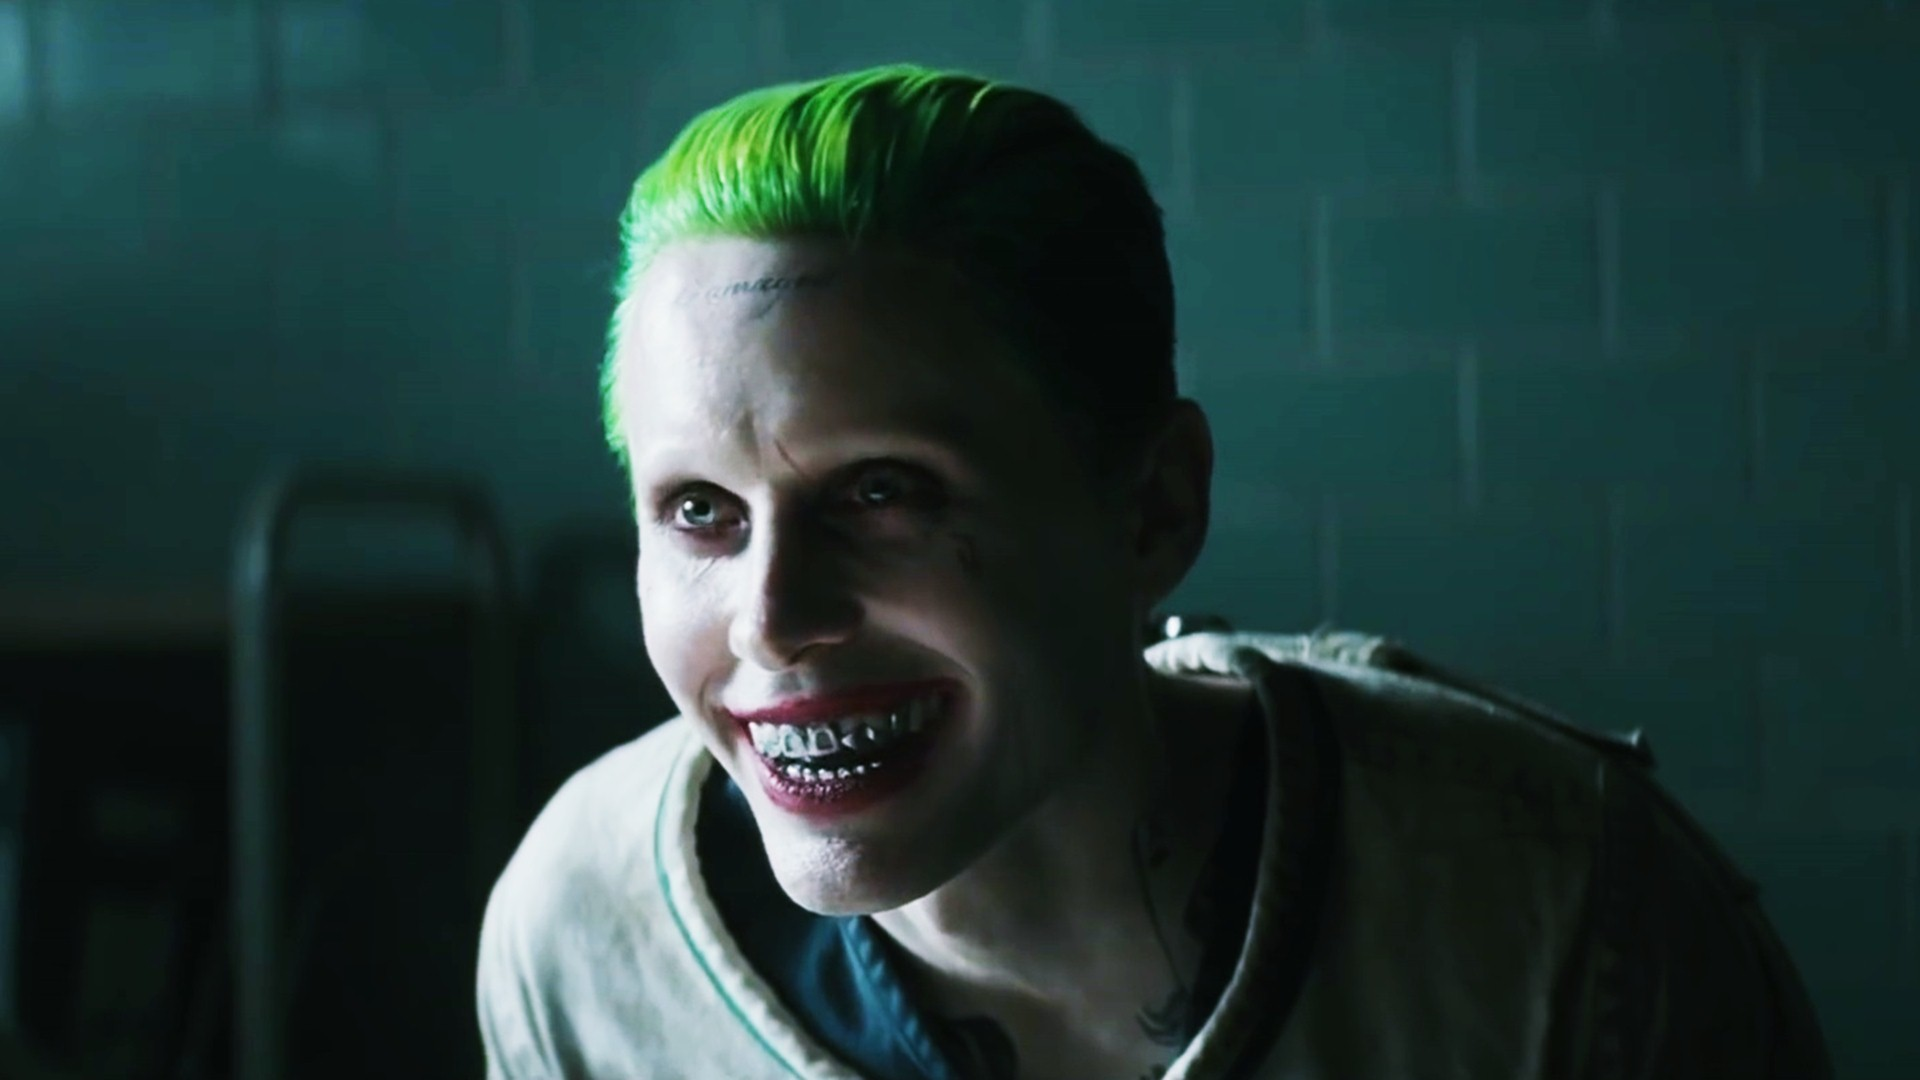 1920x1080 Suicide Squad Joker Desktop Wallpaper 05622